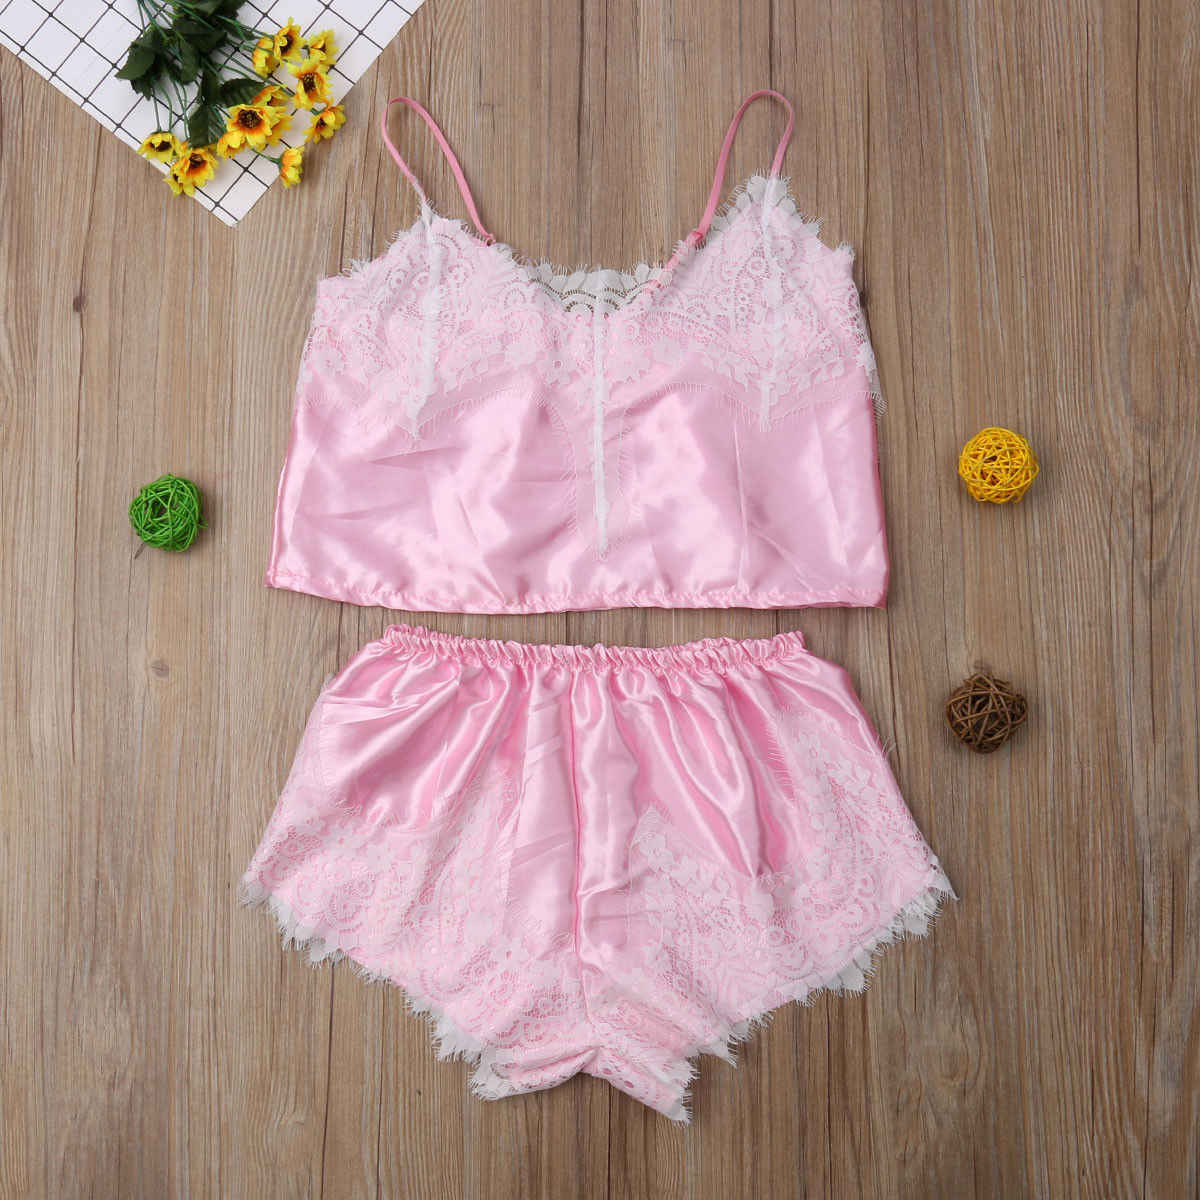 ... 2 PCS Women s Sexy Satin Lace Pajamas Babydoll Underwear Nightdress  Pajamas Set Sleeping Suits b06d0c381